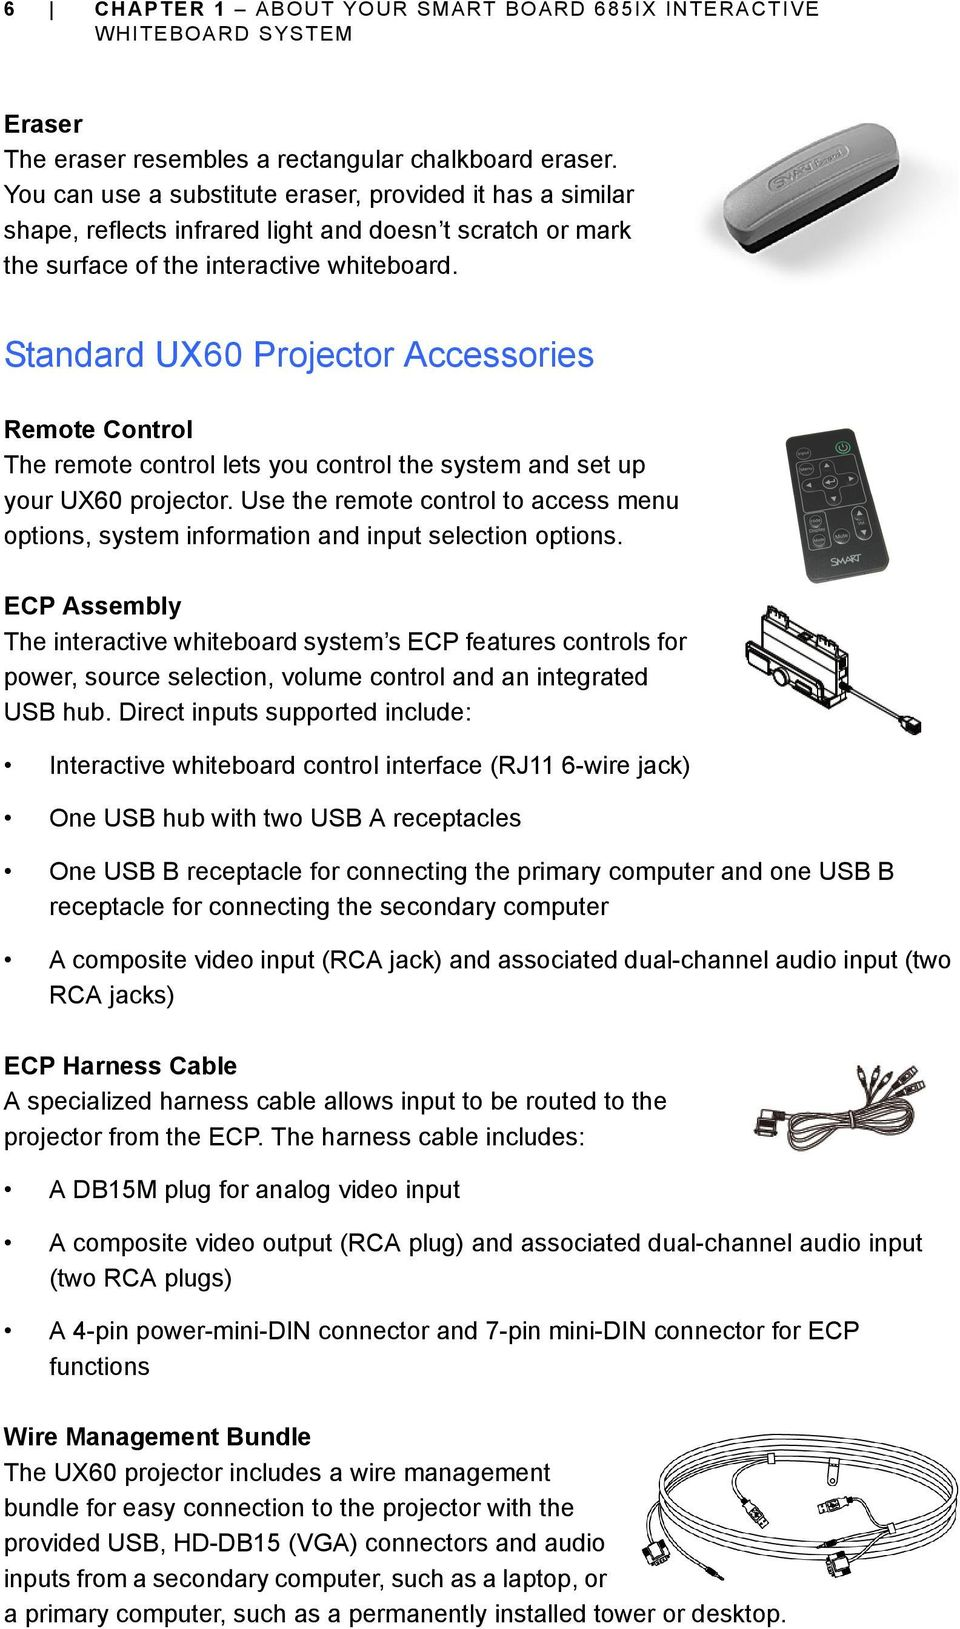 Smart Board 685ix Interactive Whiteboard System Configuration And Wiring Diagram Composite Video Cable To 15hd S Standard Ux60 Projector Accessories Remote Control The Lets You Set